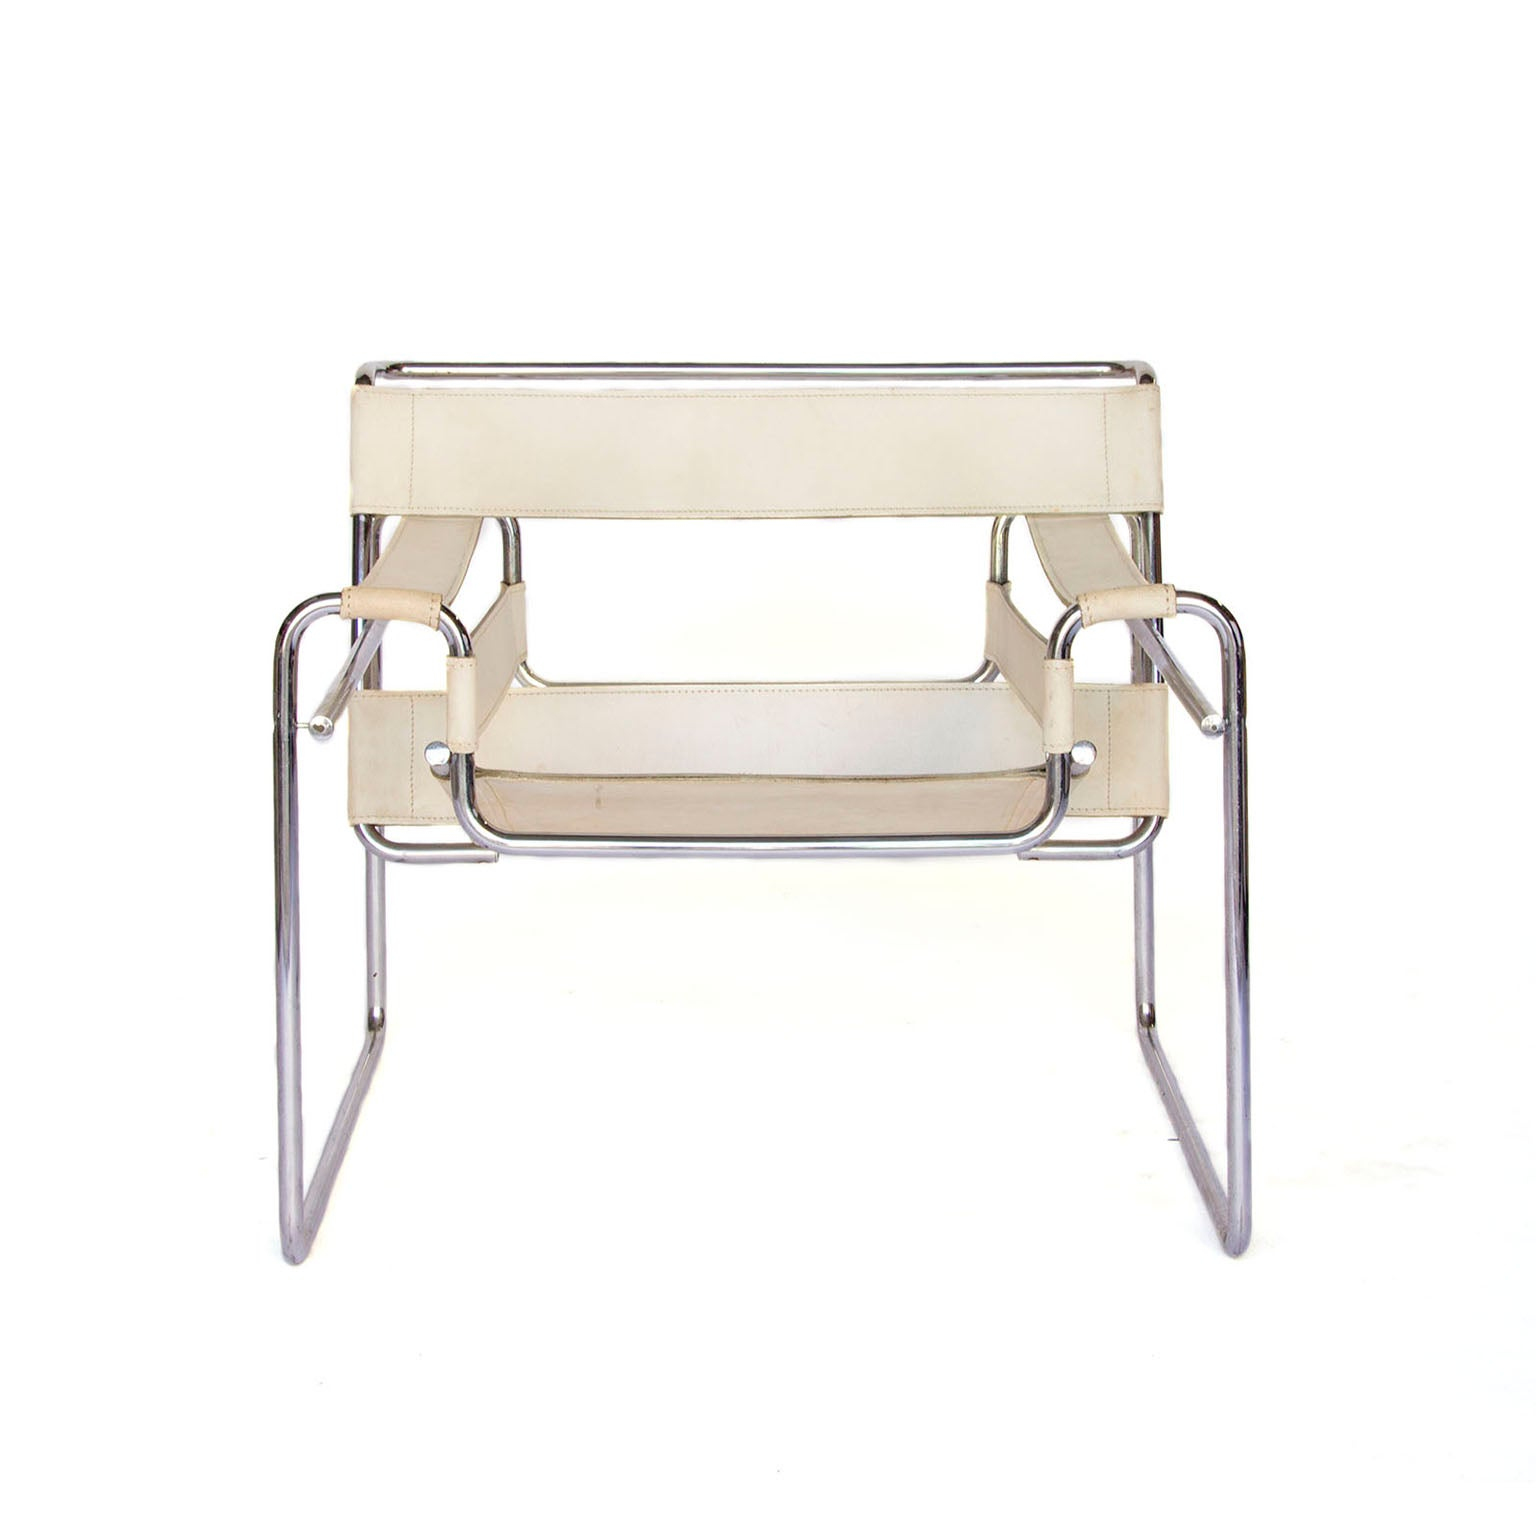 1925, Marcel Breuer, White Leather Vintage Wassily Chair For Sale